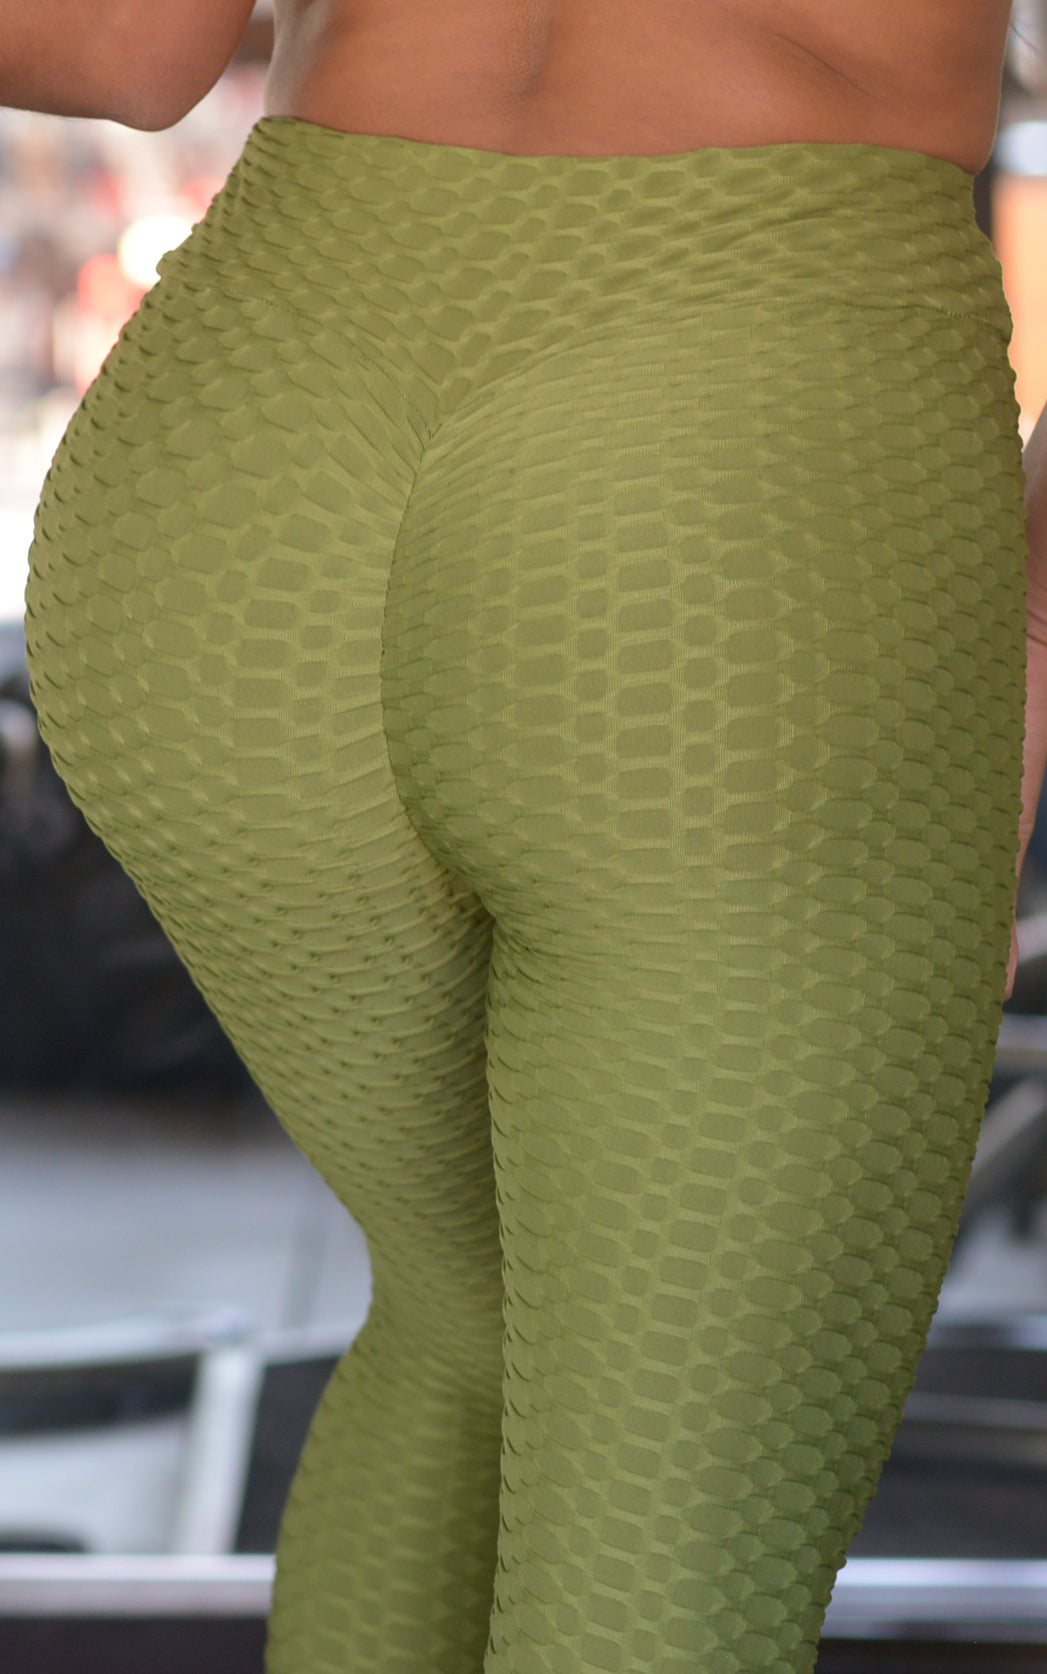 Power moves: Textured Leggings in Olive Green - Chynna Dolls Swimwear